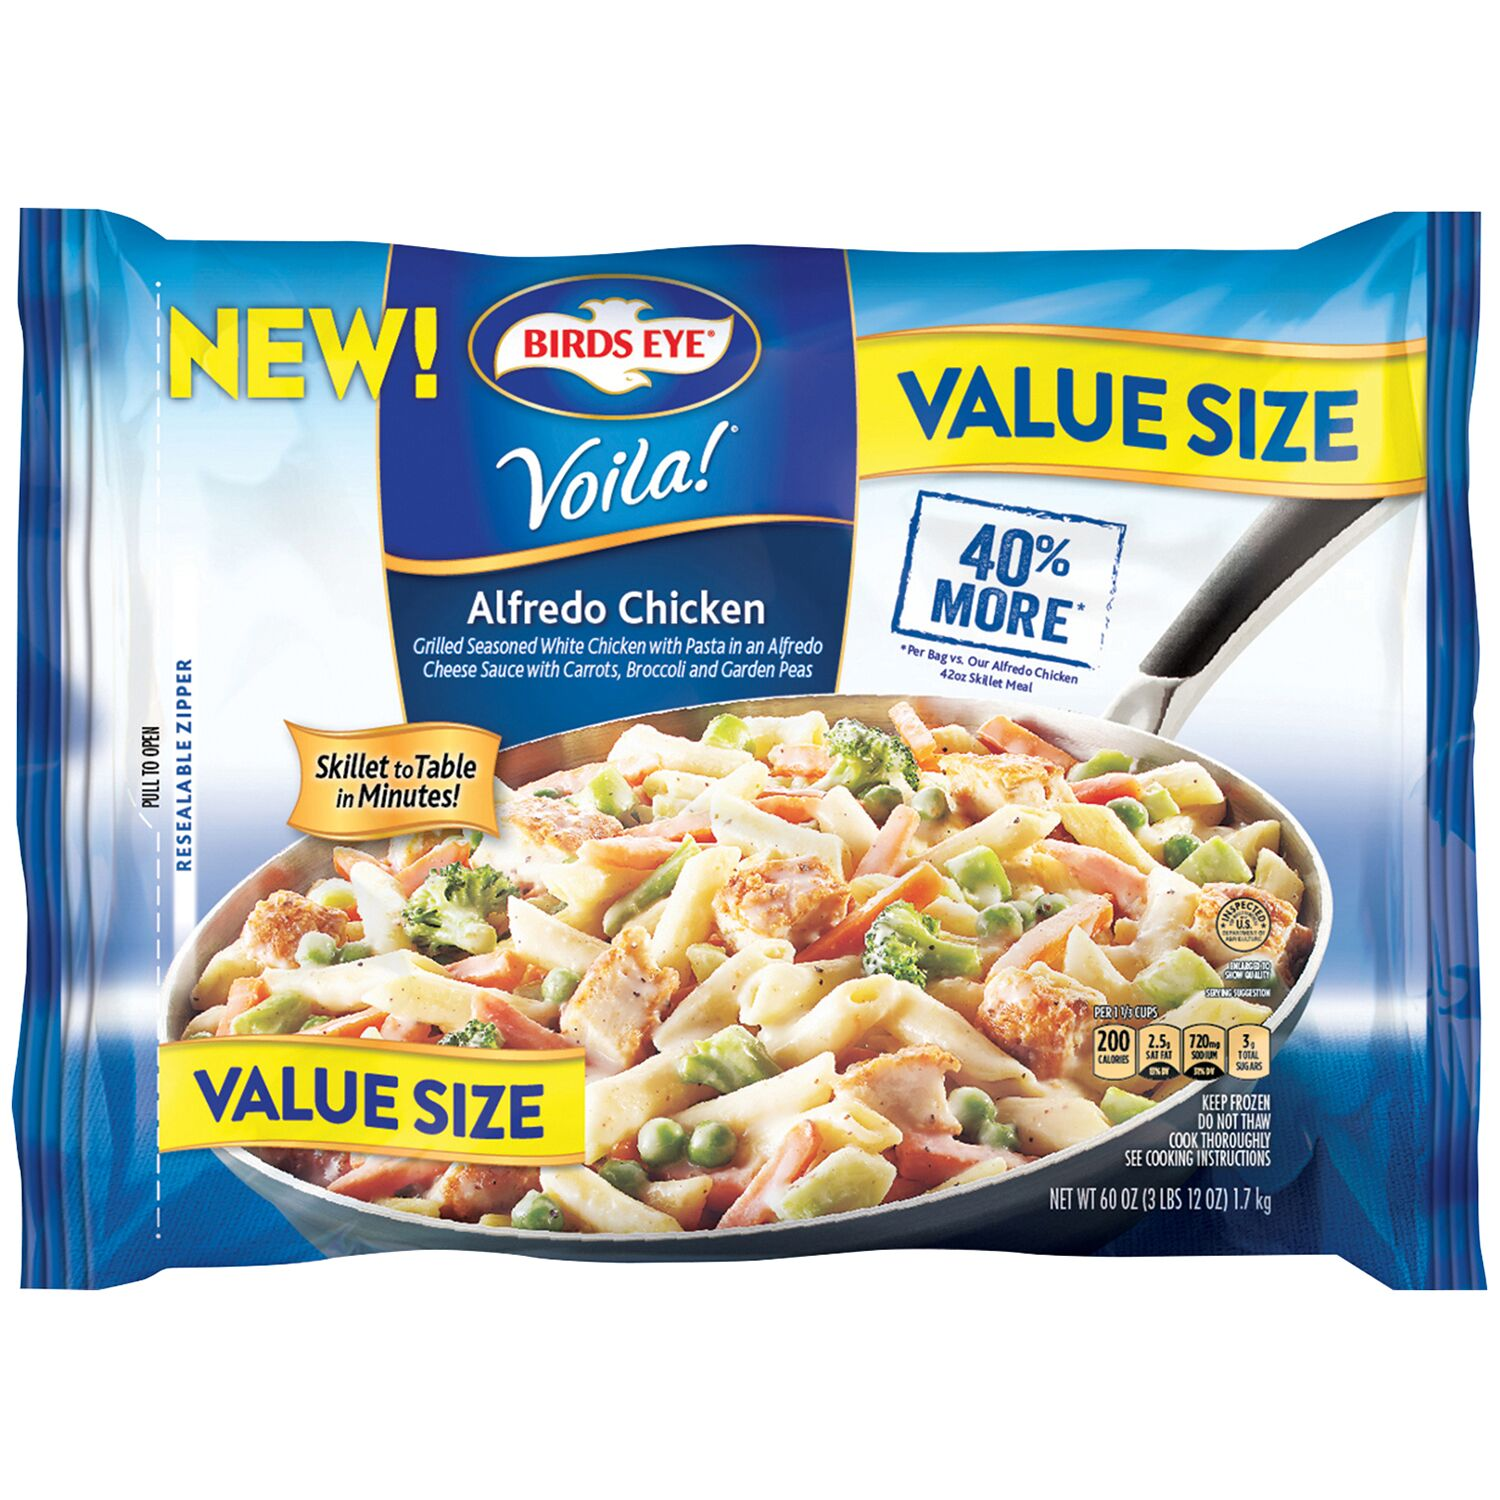 Birds Eye® Voila!® Alfredo Chicken Value Size